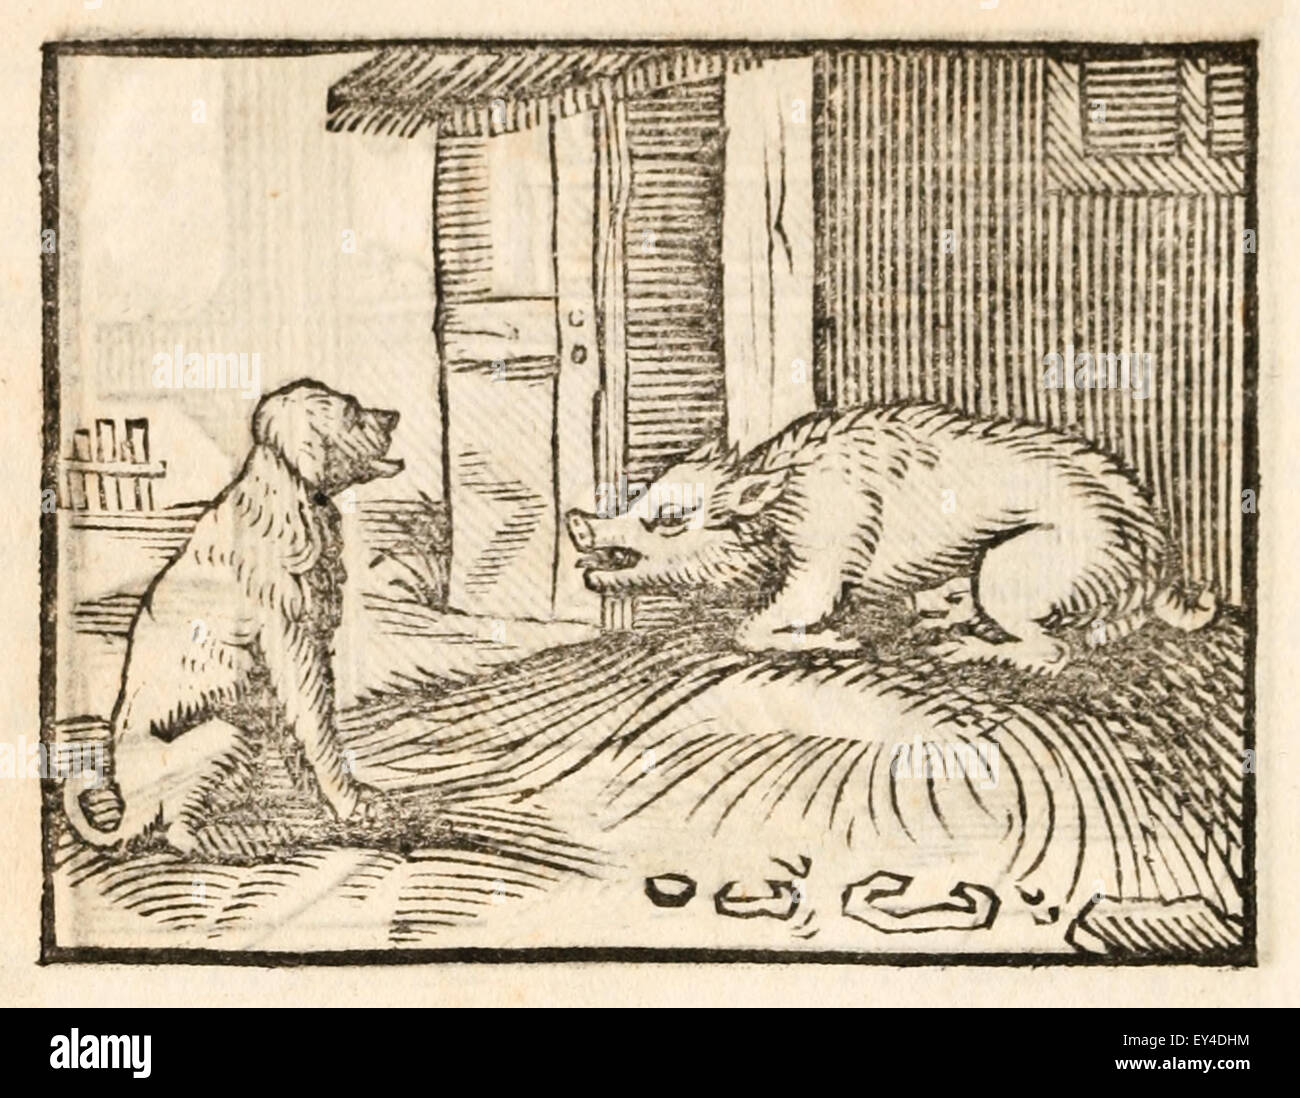 'A Sow and A Dog' fable by Aesop (circa 600BC).  A Sow and Dog argued. The Sow swore by Venus she would - Stock Image